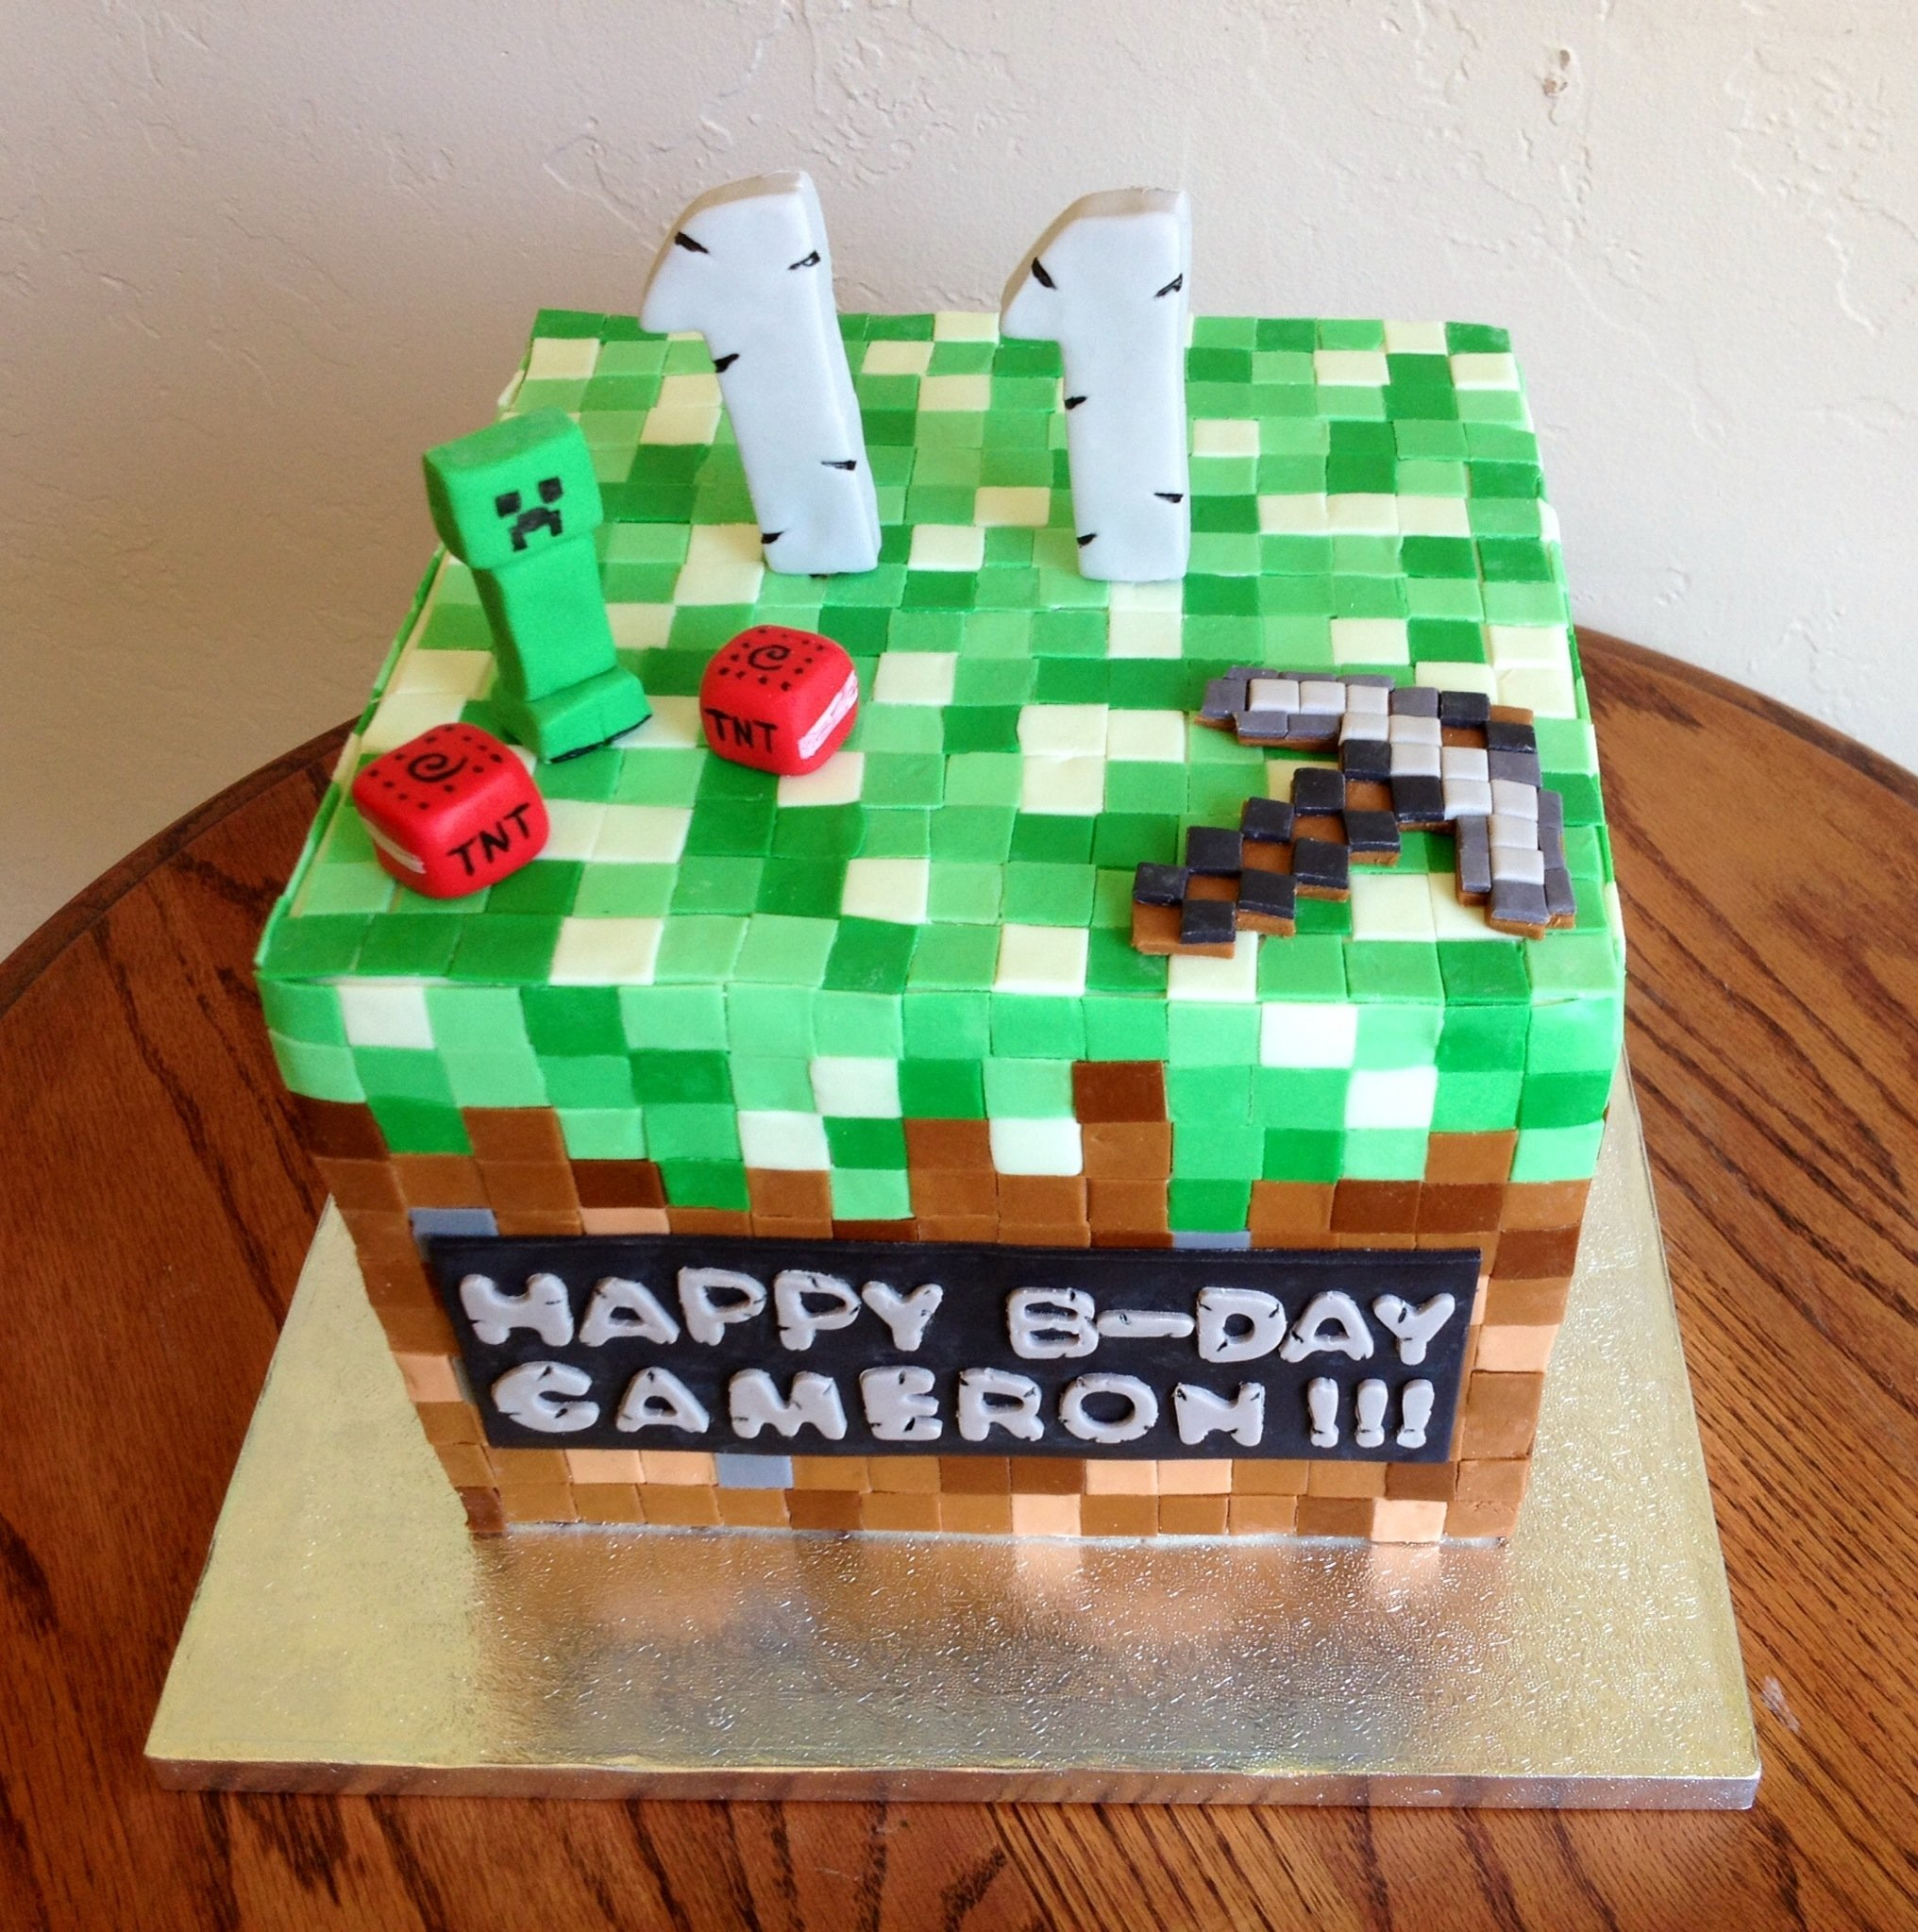 10 Beautiful Birthday Party Ideas For 11 Year Old Boys minecraft cake for an 11 year old birthday boy he was so excited 2021